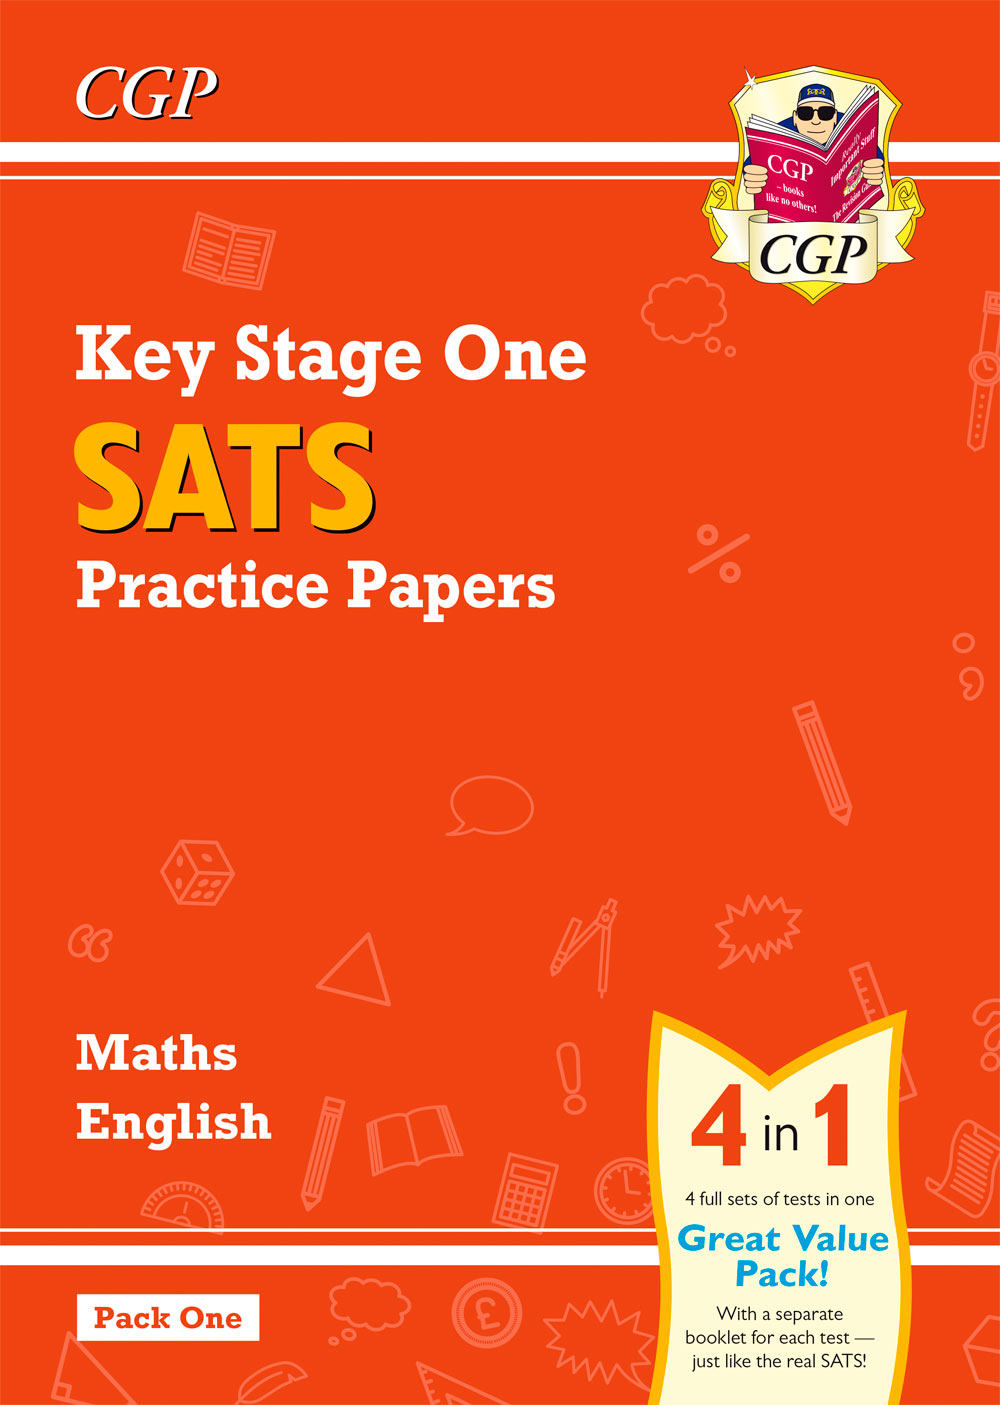 MEB16 - KS1 Maths and English SATS Practice Papers Pack (for the 2021 tests) - Pack 1